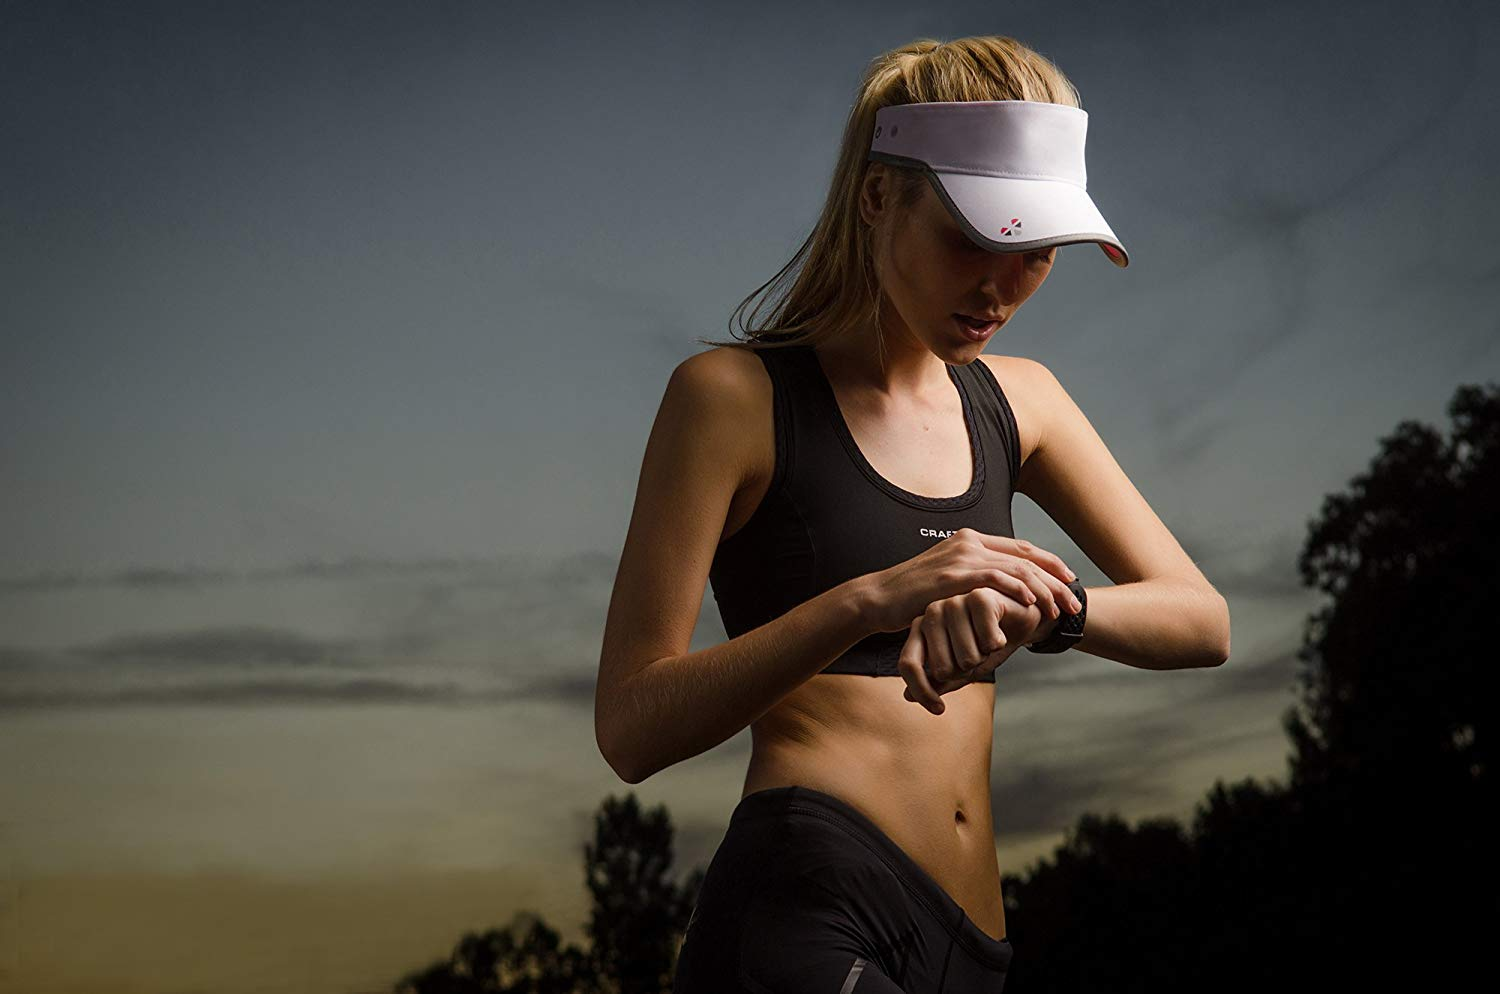 LifeBEAM Smart Visor with Integrated Heart Rate Monitor